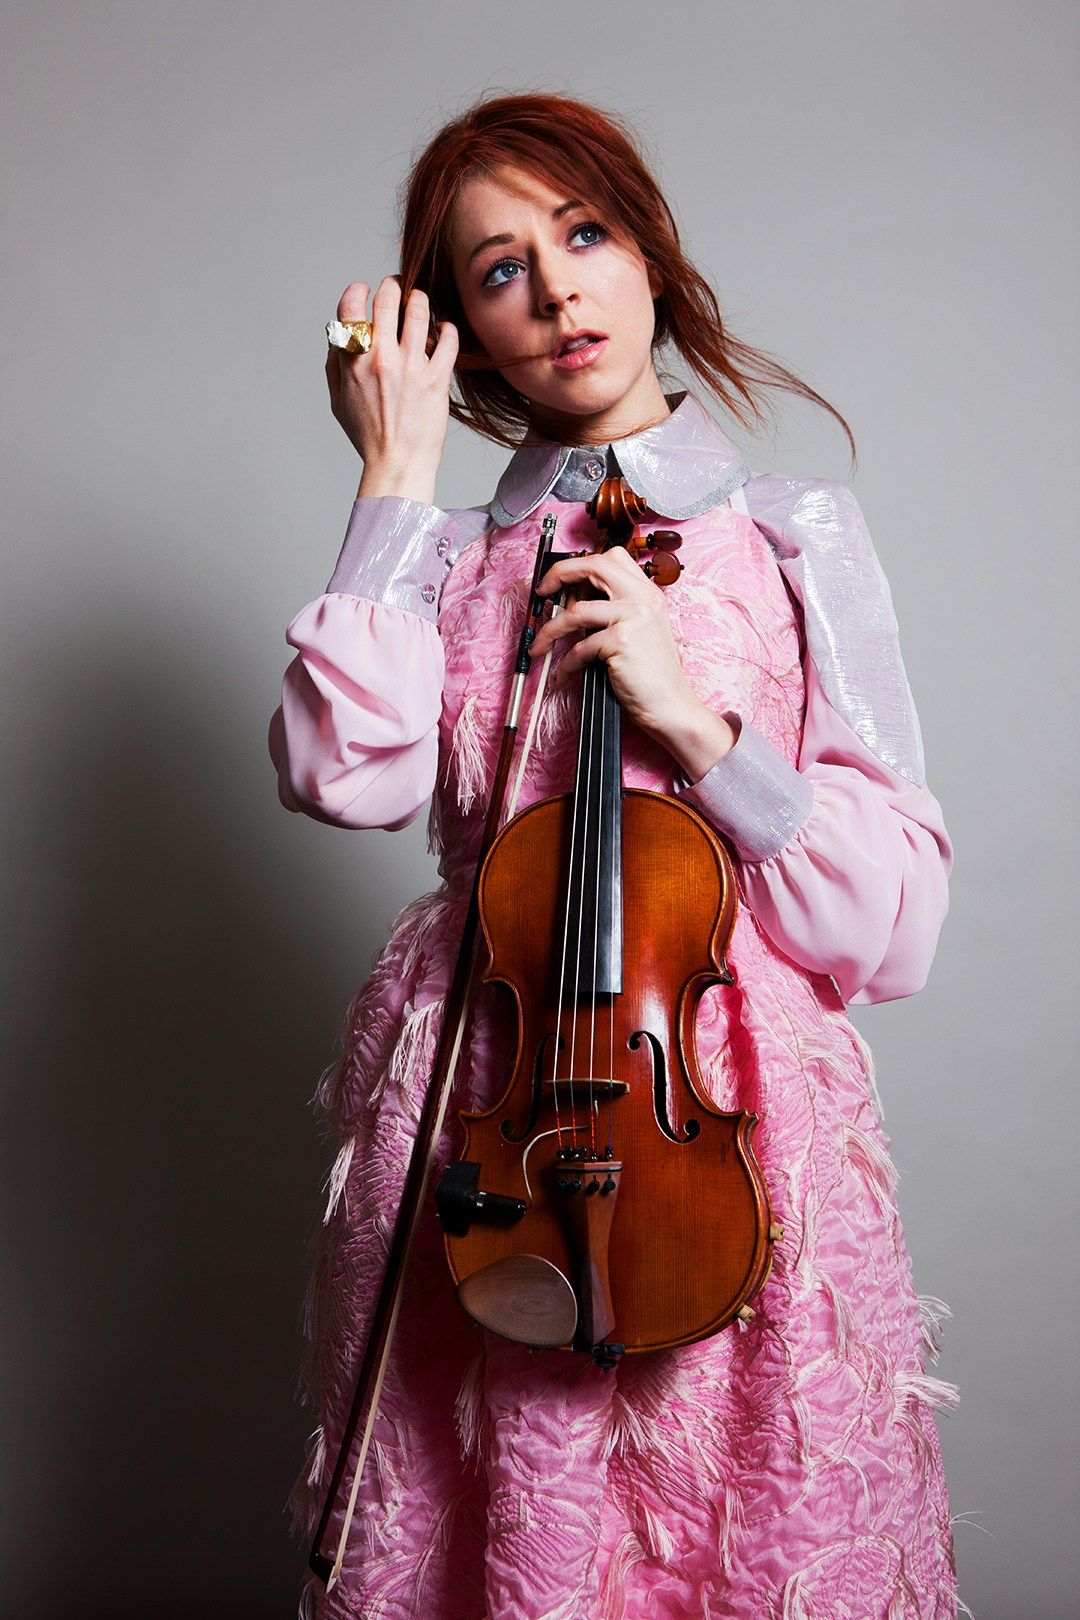 Meet Lindsey Stirling The Violinist Winning Our Hearts With Her Sonic Creations Linsey Stirling Artistas Musicales Lindsey Stirling